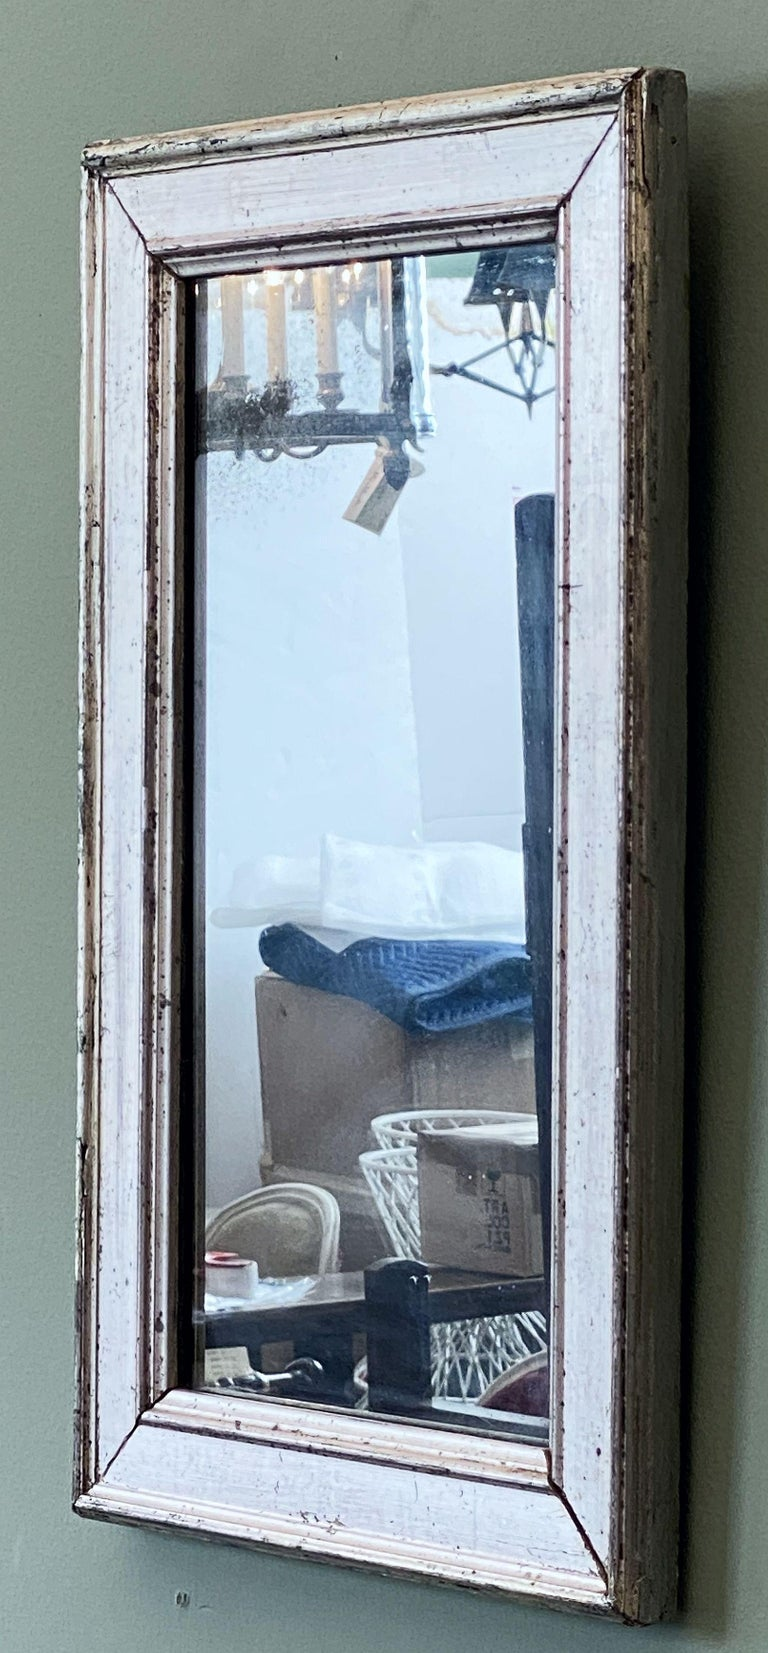 19th Century French Rectangular Silver Gilt Wall Mirror (H 19 1/2 x W 12 1/4) For Sale